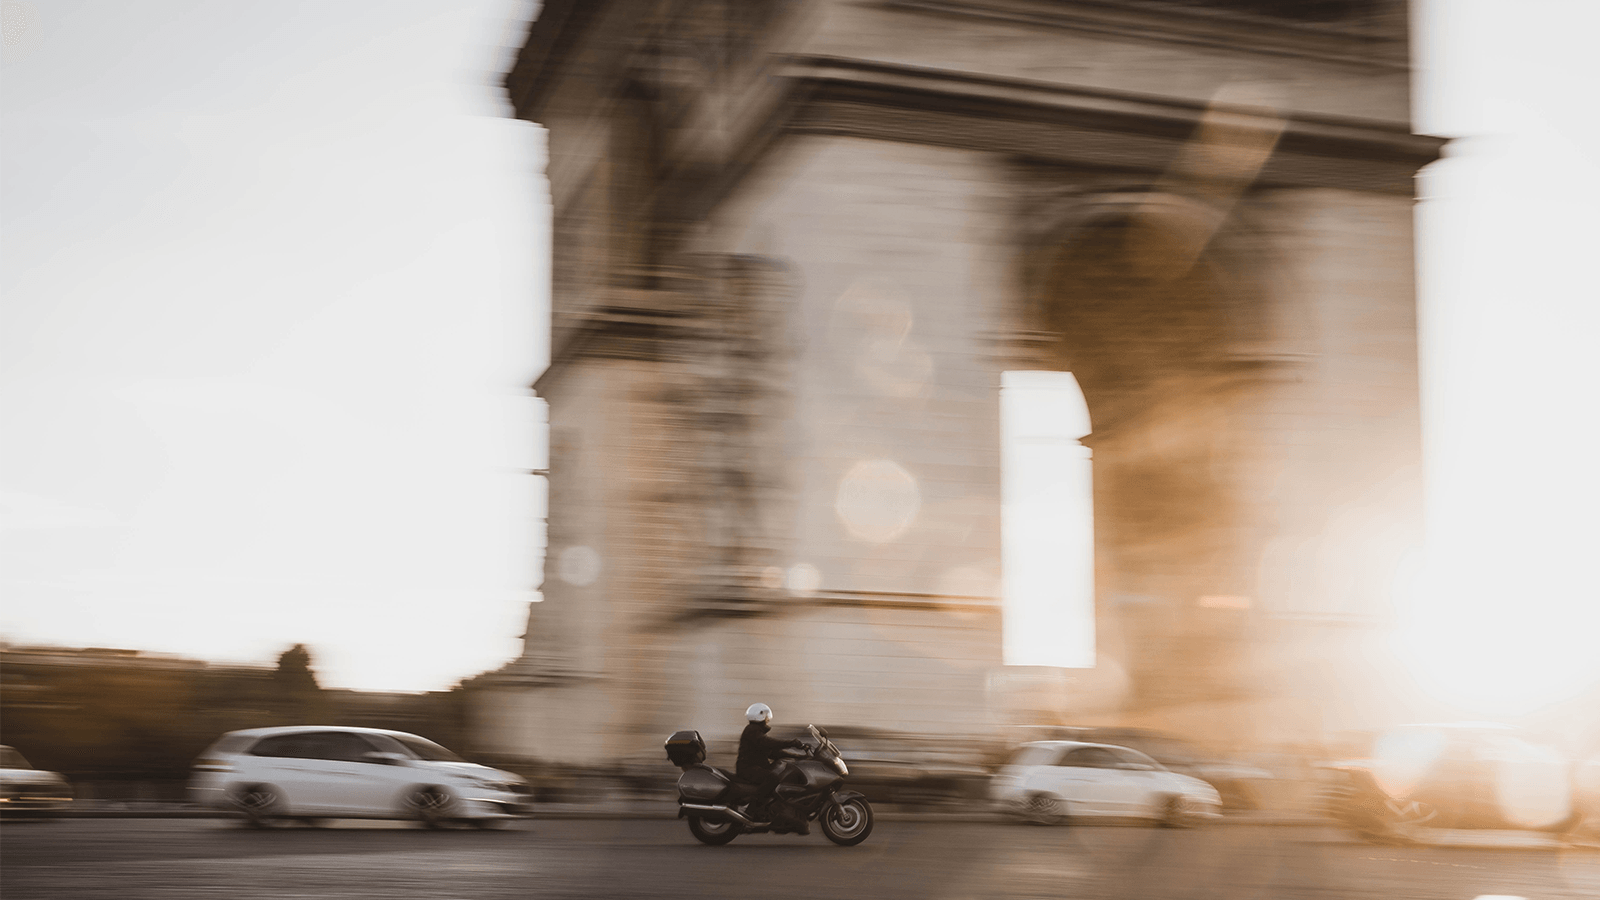 What I Learned About Master Data Navigating the Champs-Élysées